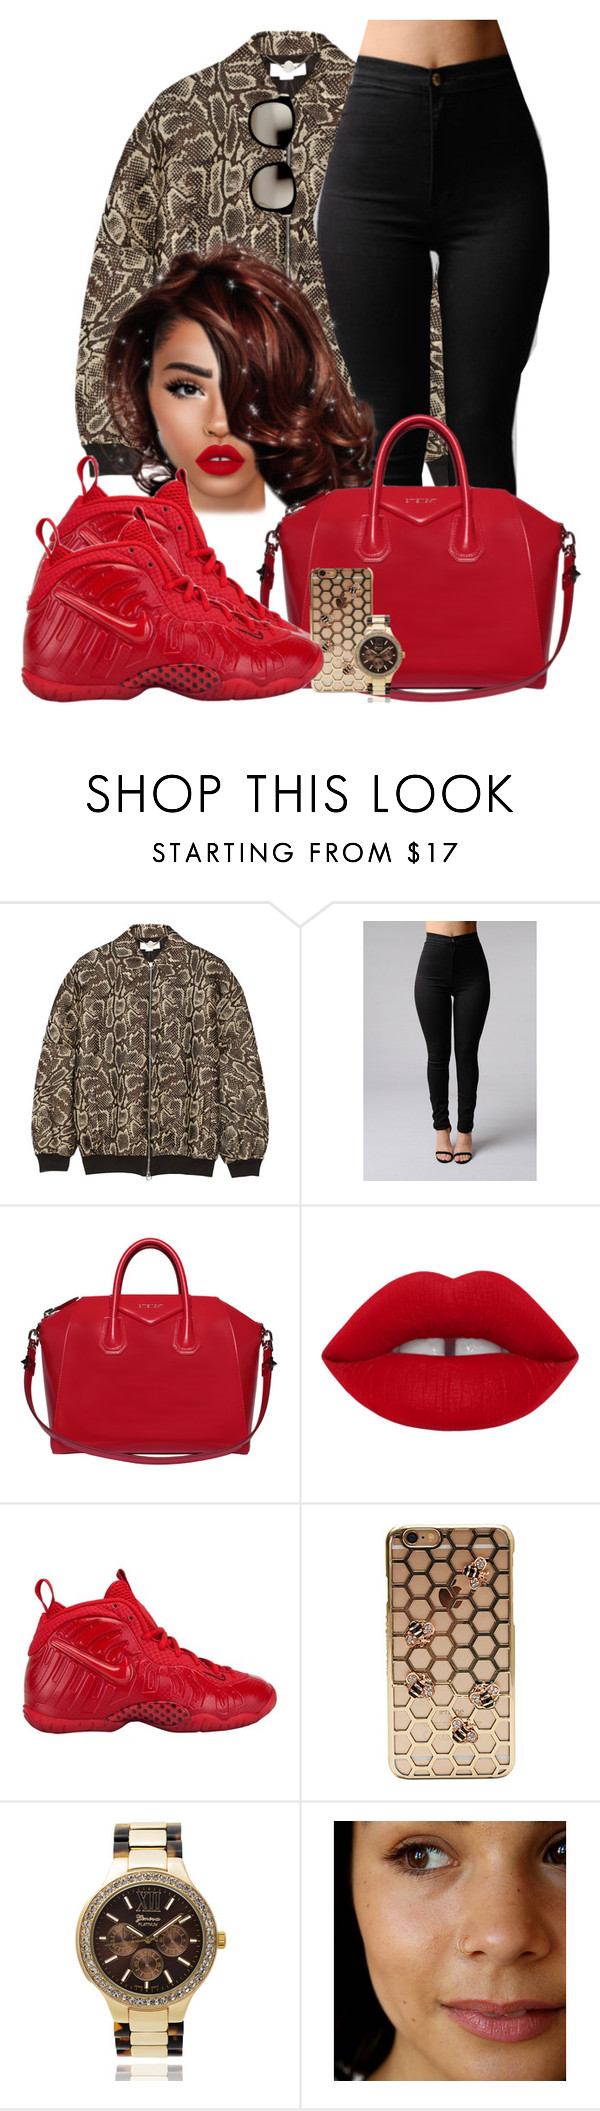 """Novacane"" by chiamaka-ikaraoha ❤ liked on Polyvore featuring STELLA McCARTNEY, Givenchy, NIKE, Geneva and Linda Farrow"